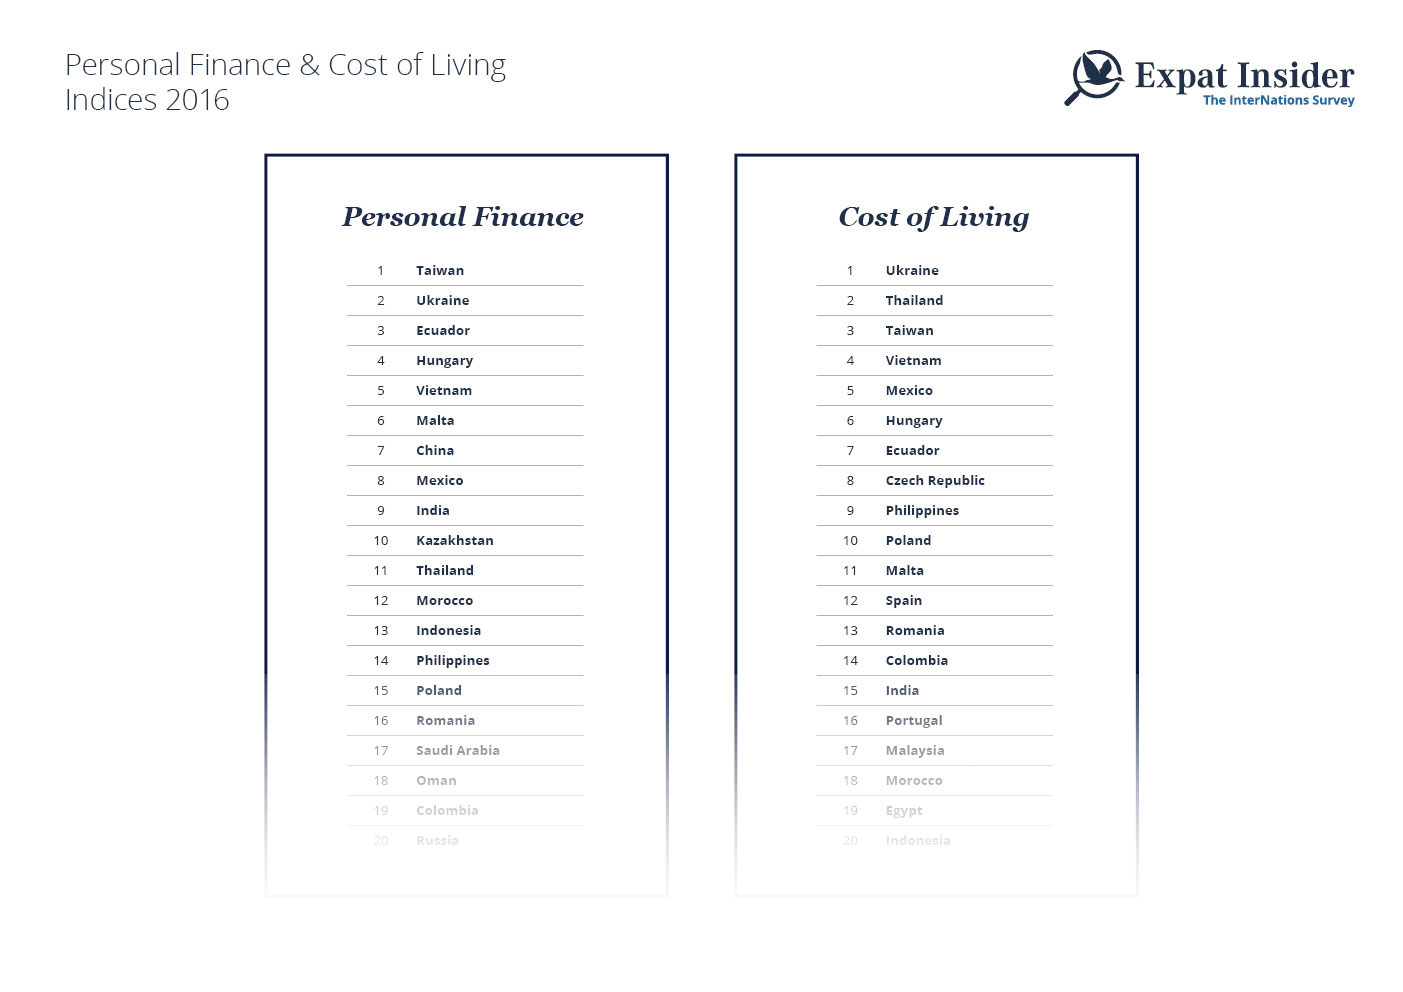 Personal Finance & Cost of Living Indices 2016